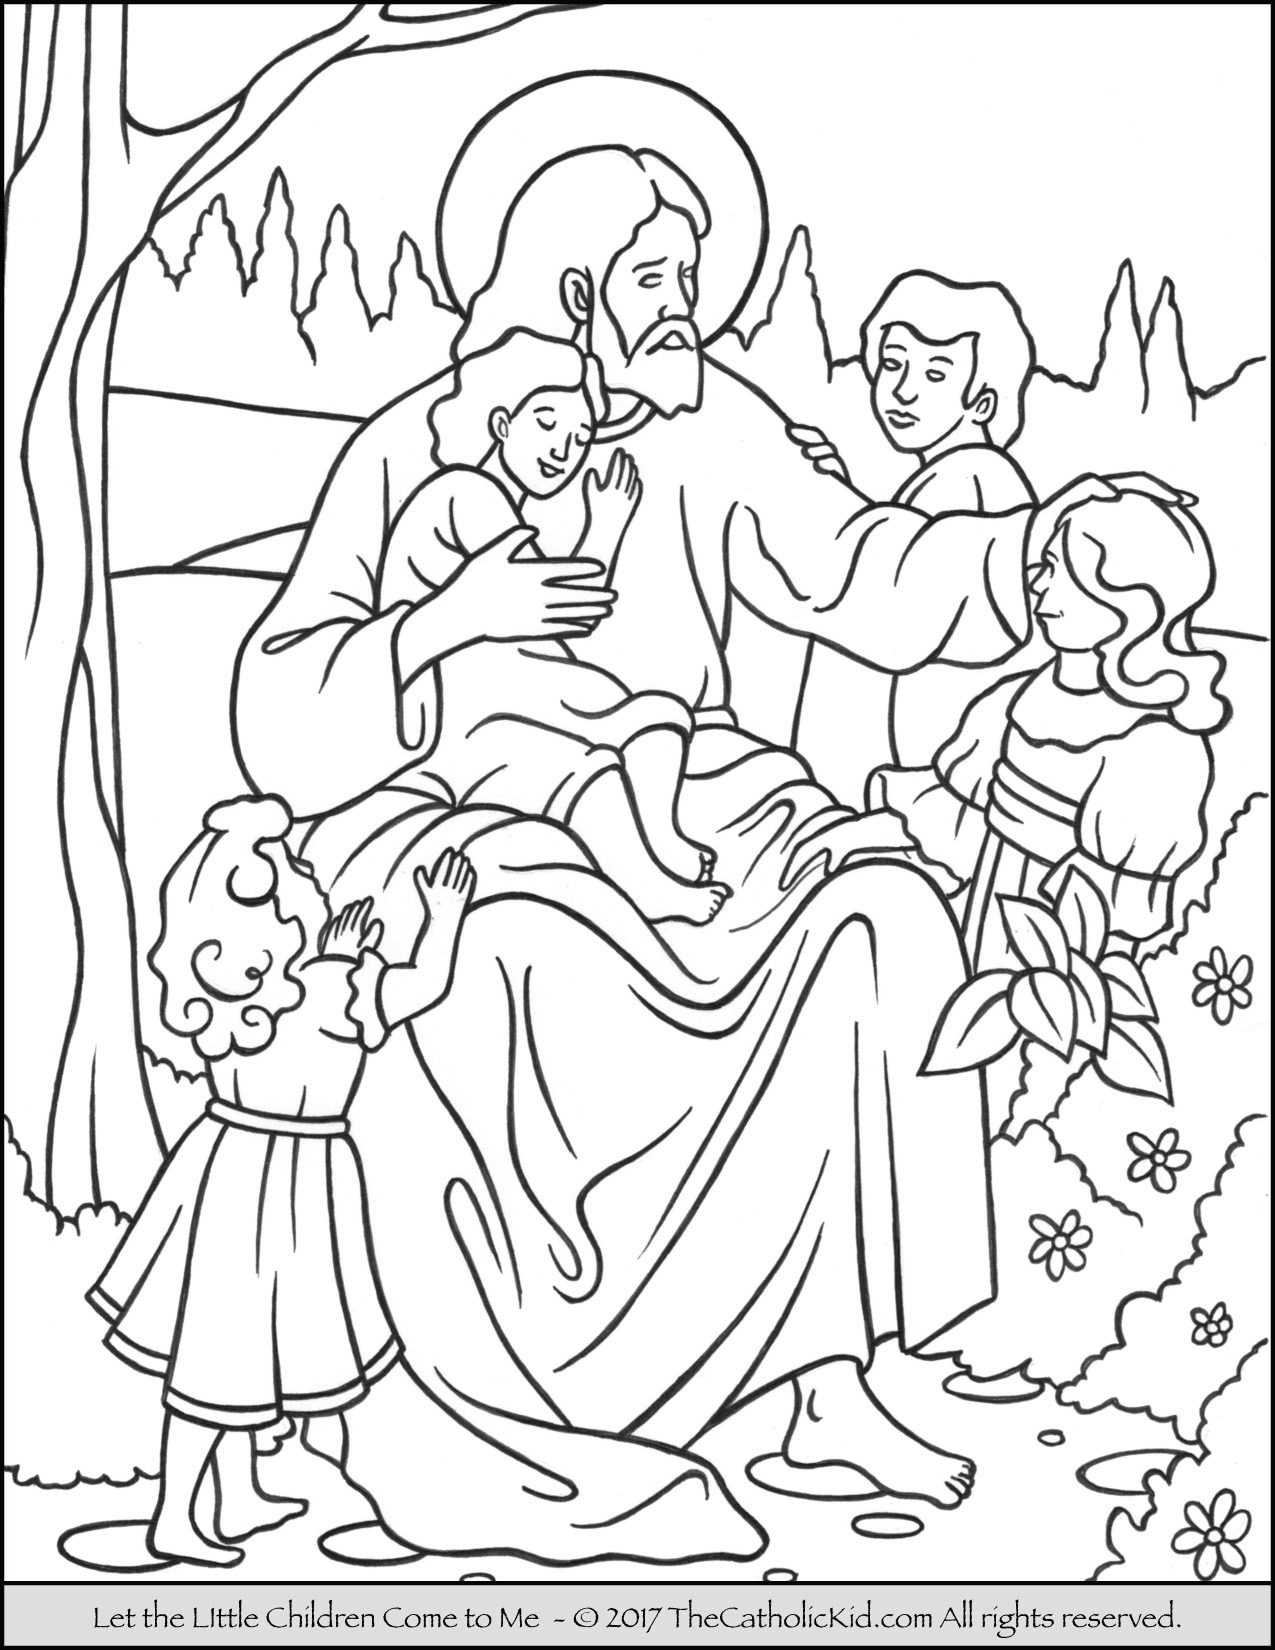 coloring jesus jesus let the little children come to me coloring page coloring jesus